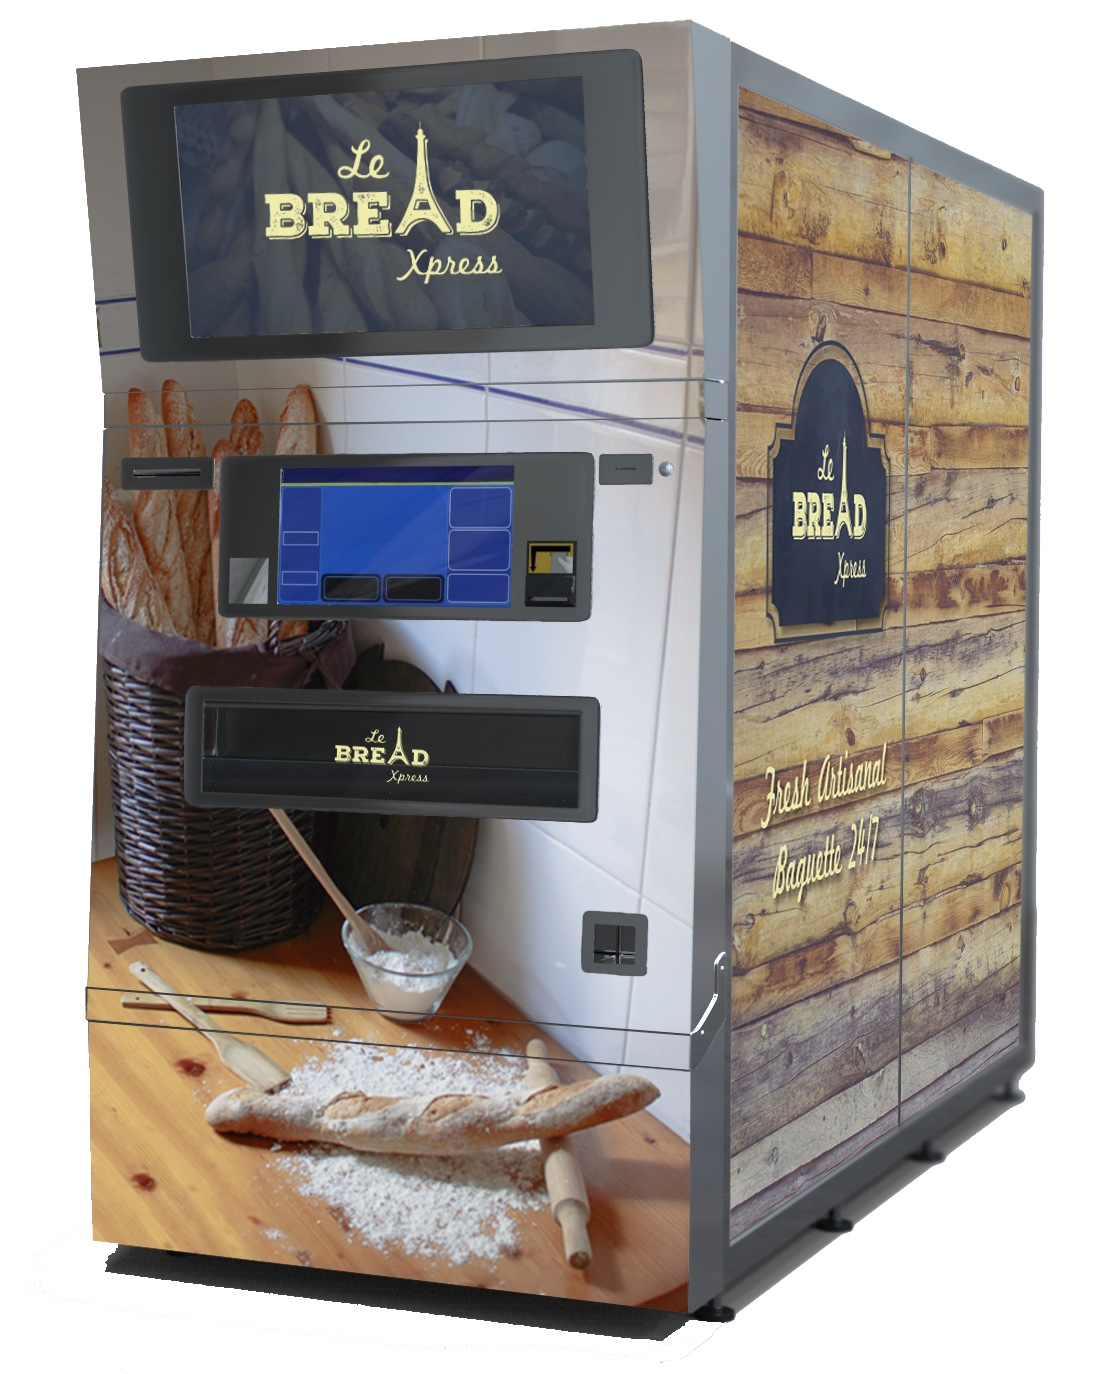 Le Bread Xpress Announces Crowdfunding Project Through Fundable